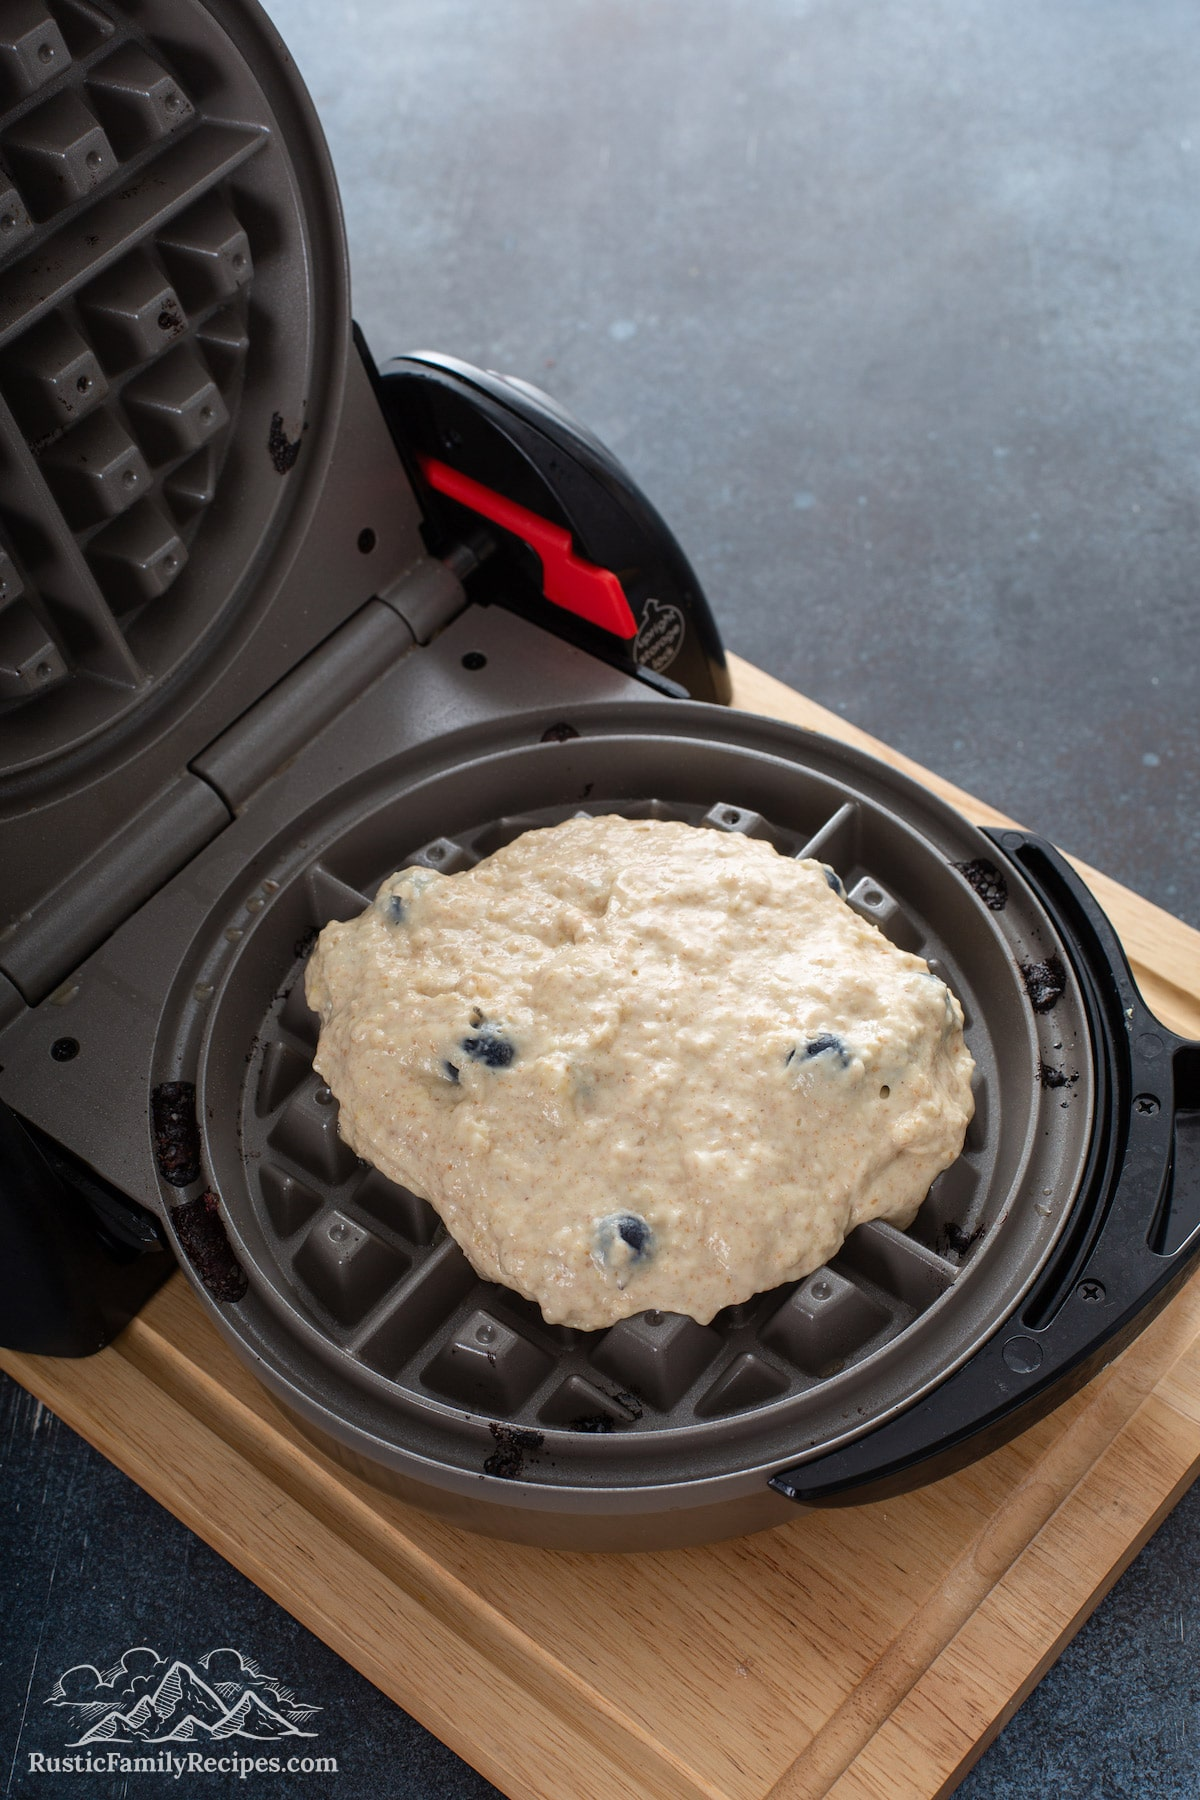 The batter spooned into the Belgian waffle maker.